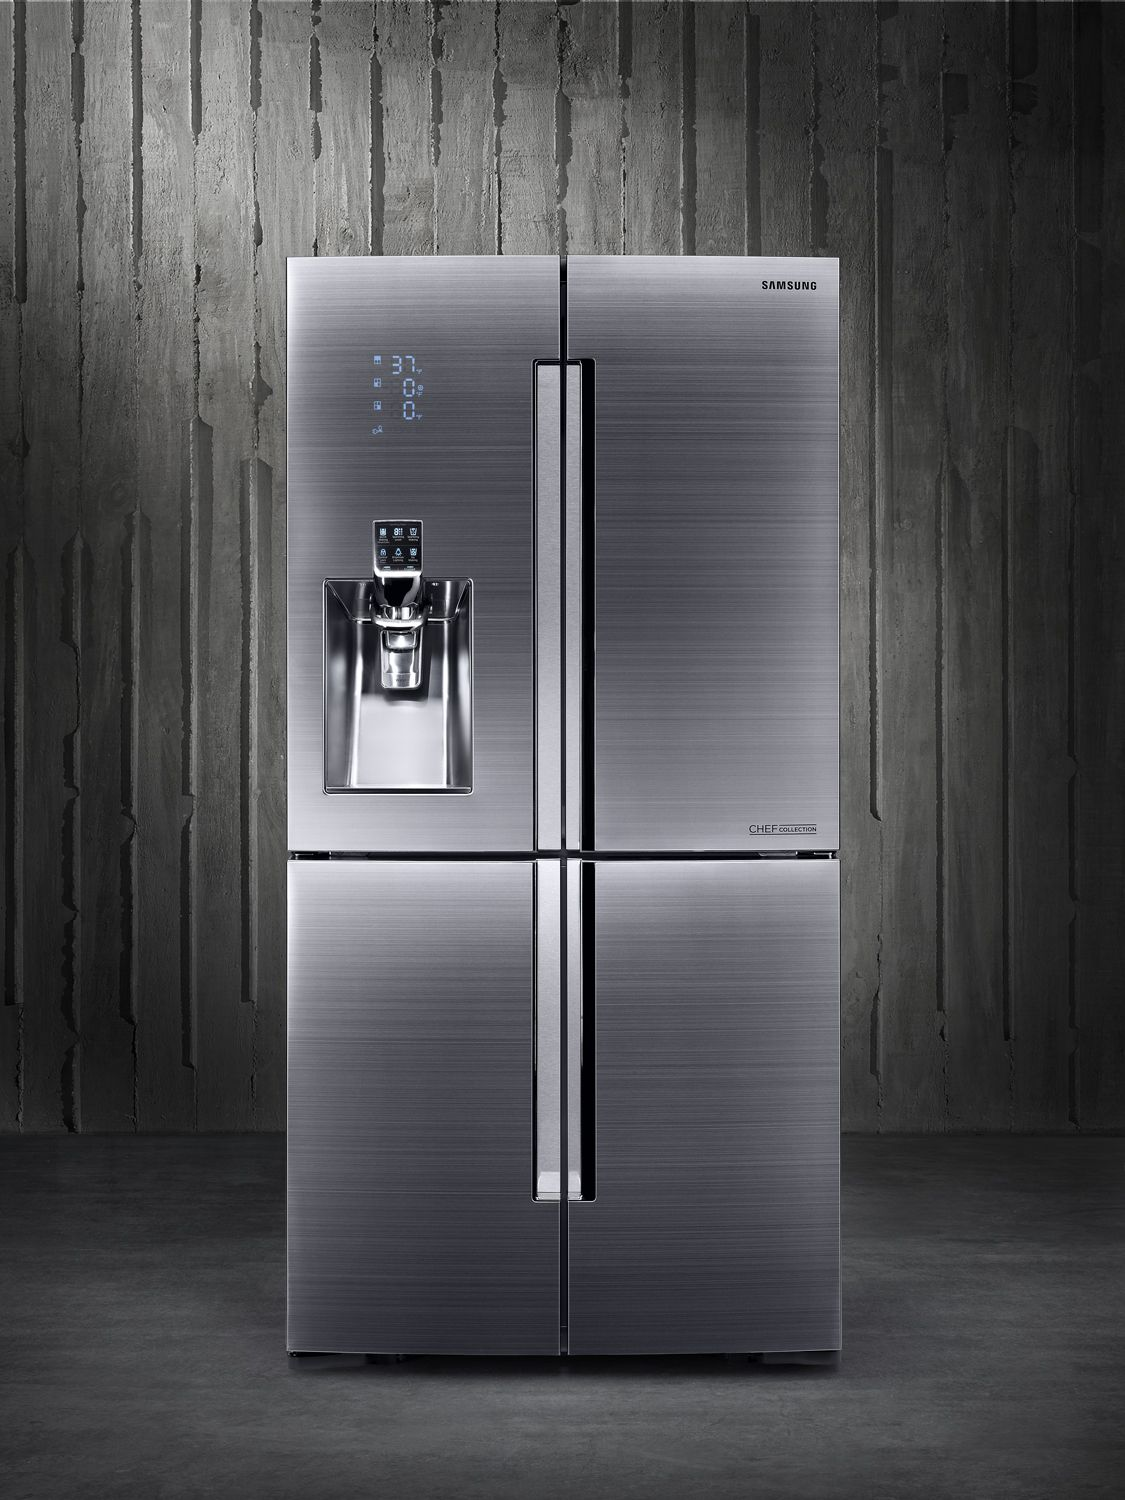 Samsung Release Their Most Premium Refrigerator To Date